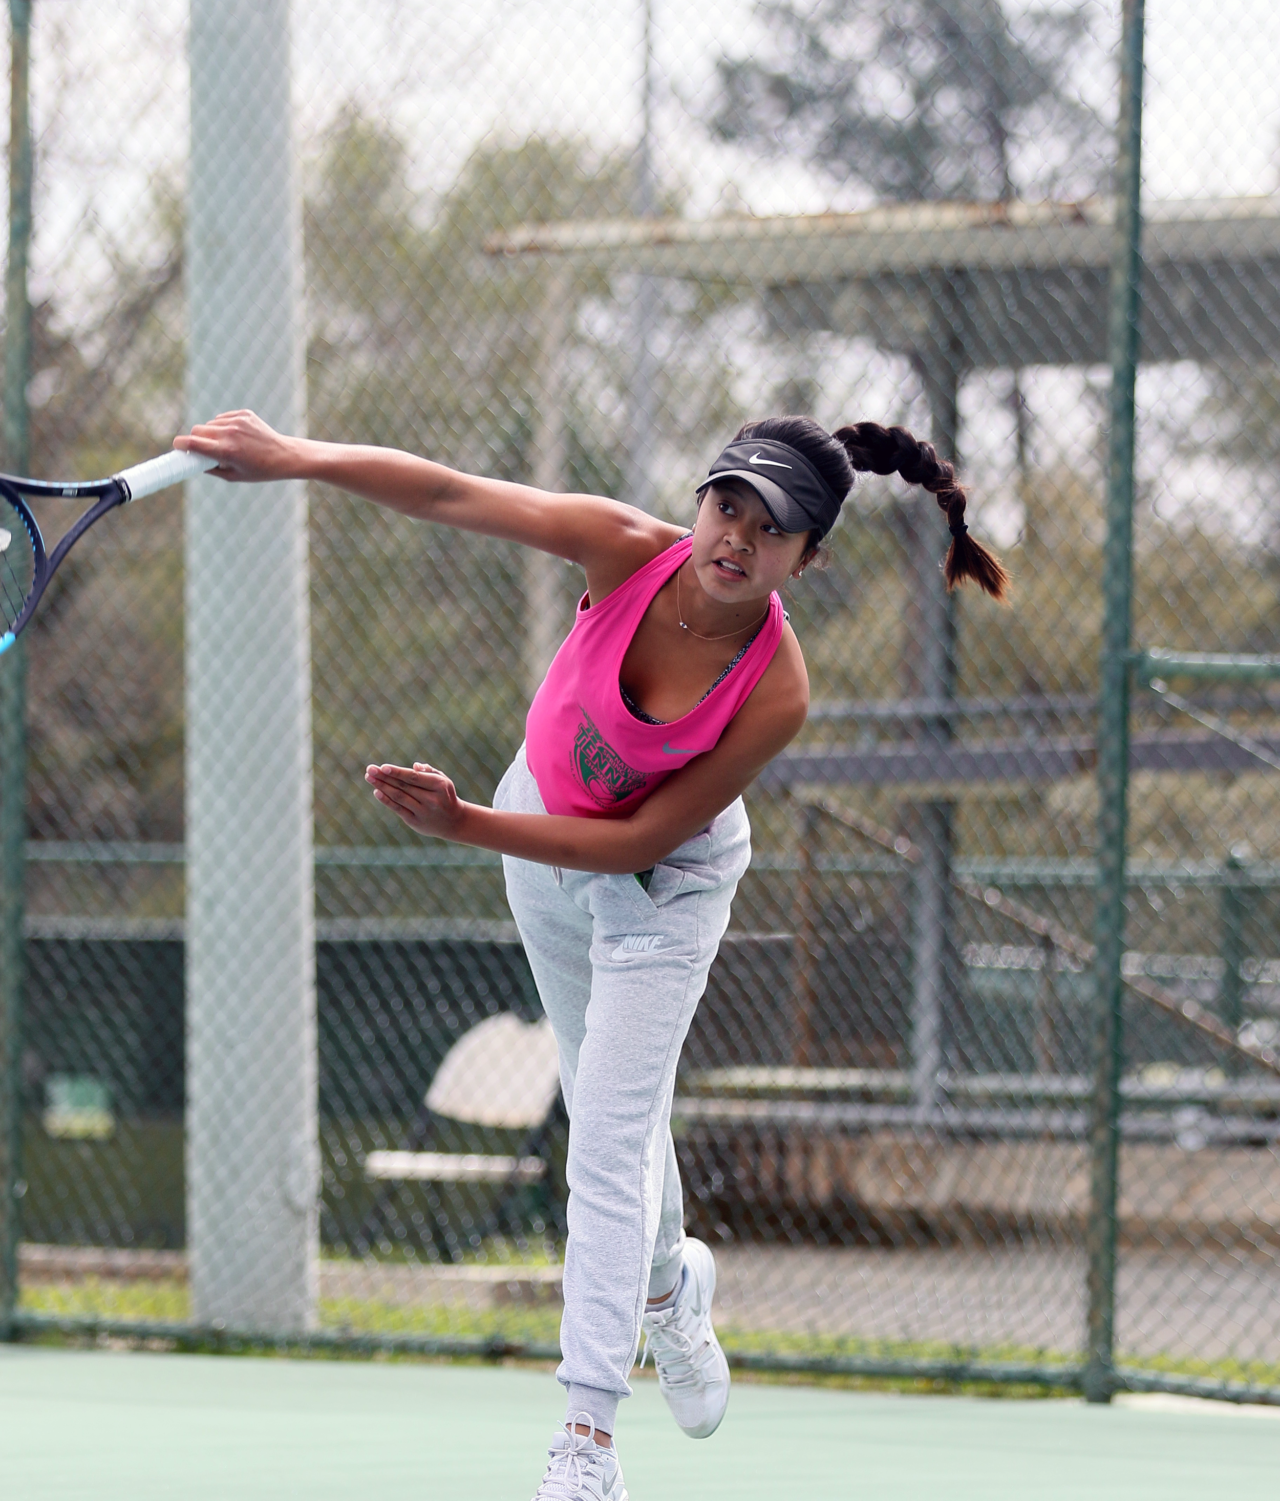 Freshman Bella Chhiv competes in tournaments regularly, such as the United States Tennis Association (USTA) National Springteam Championship hosted in Mobile, Alabama; additionally, she is currently ranked 11th in California, according to the Babolat recruiting list on the Tennis Recruiting Network.